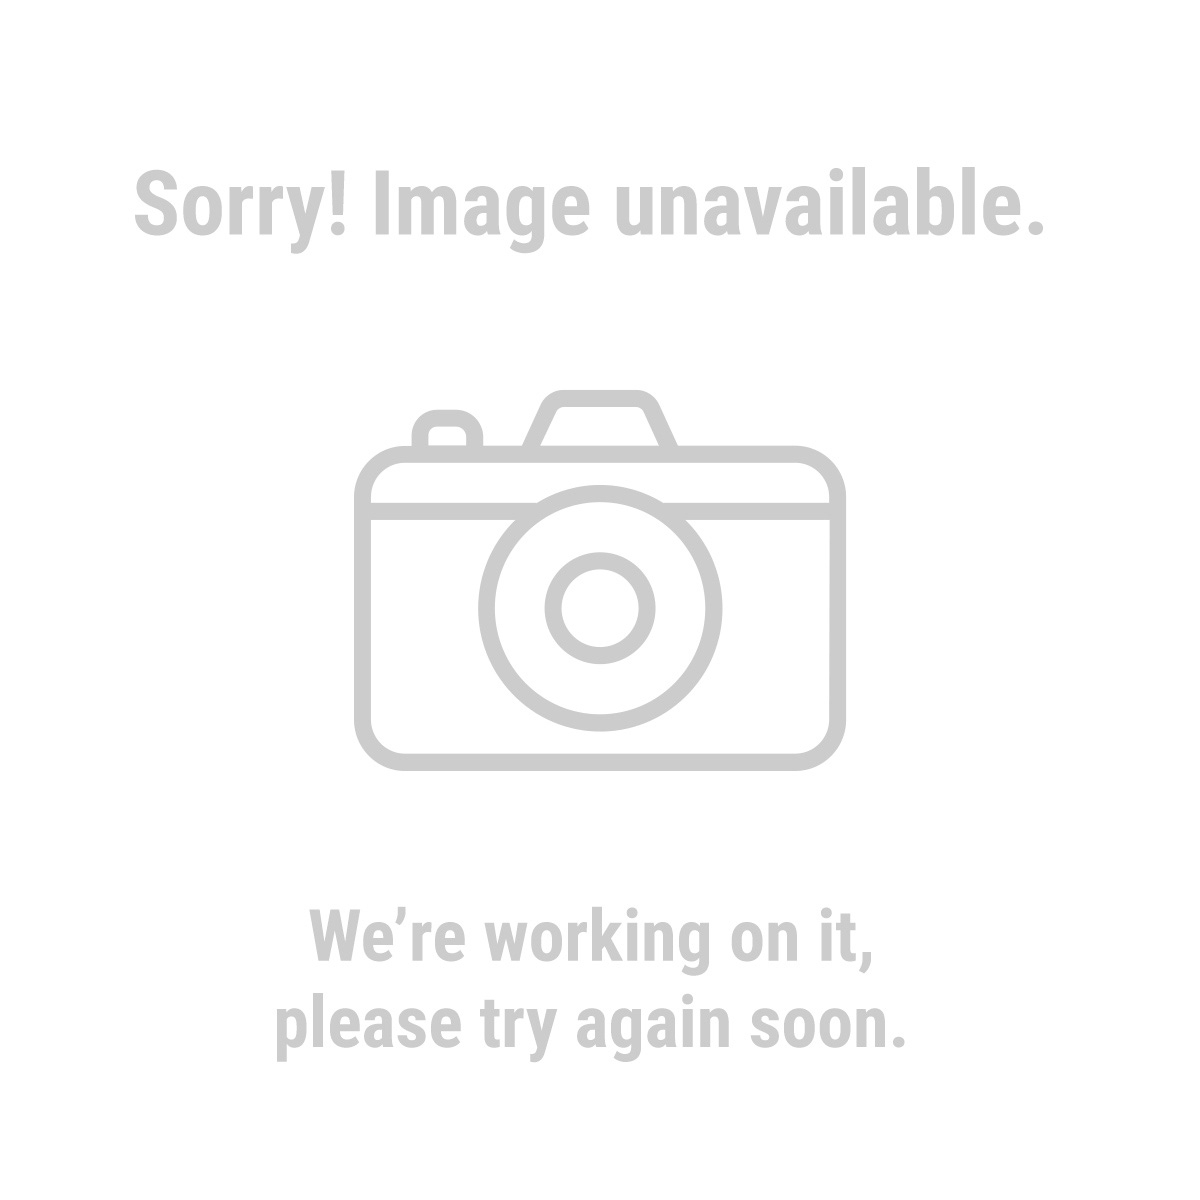 U.S. General 99729 6 Compartment Drawer Organizer